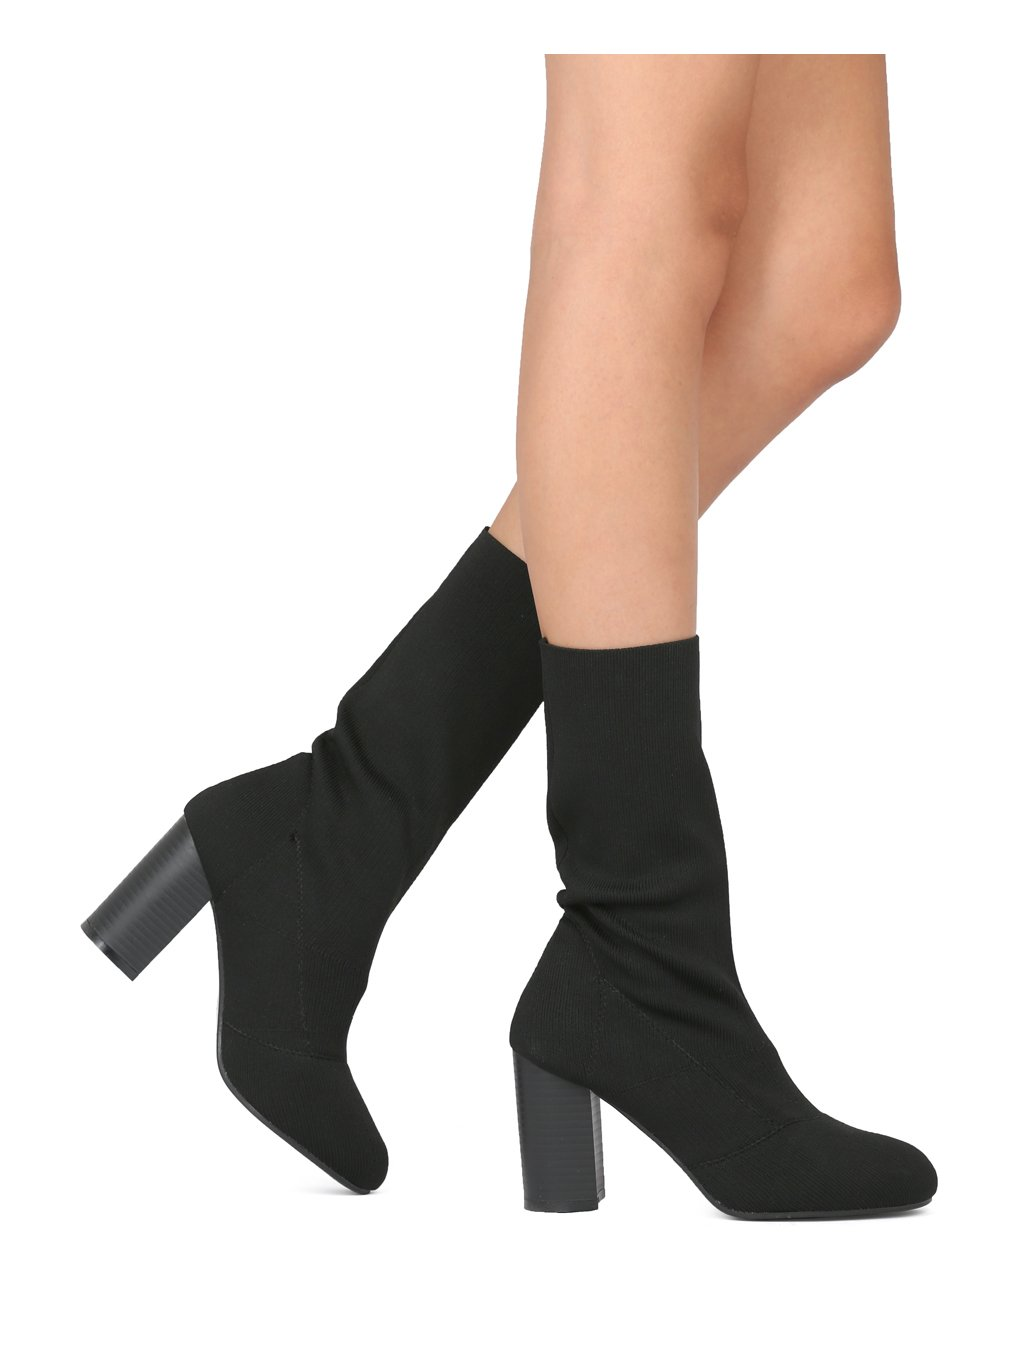 Indulge Sophie-I Women Knitted Fabric Mid Calf Block Heel Sock Boot HE42 - Black Cotton (Size: 8.0)